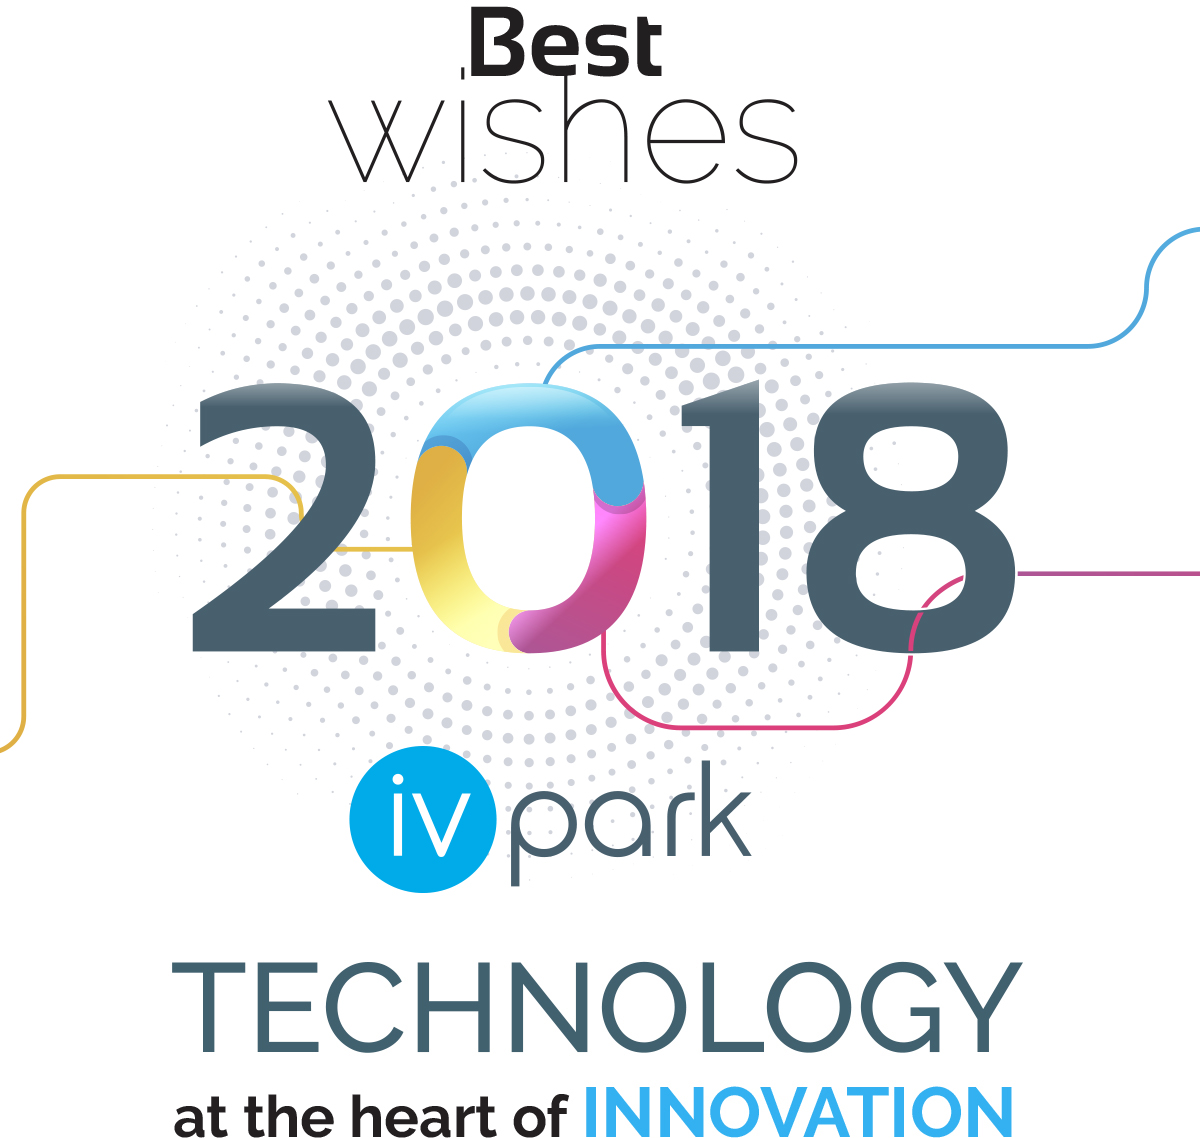 Best Wishes 2018 - IVPark, technologie at the hearth of innovation